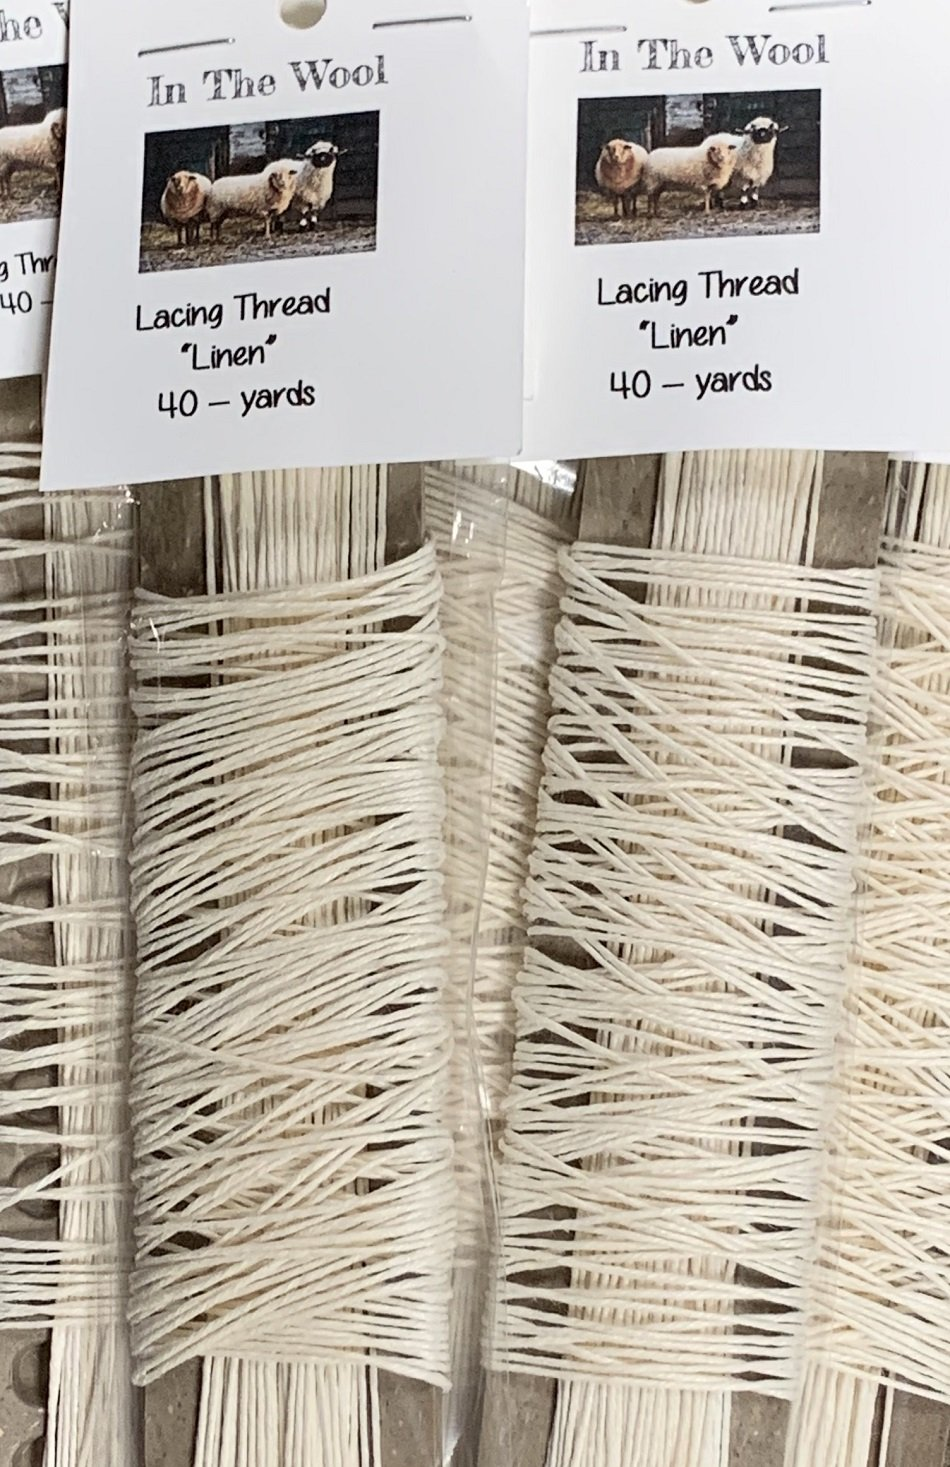 Lacing Thread - Linen/Pack